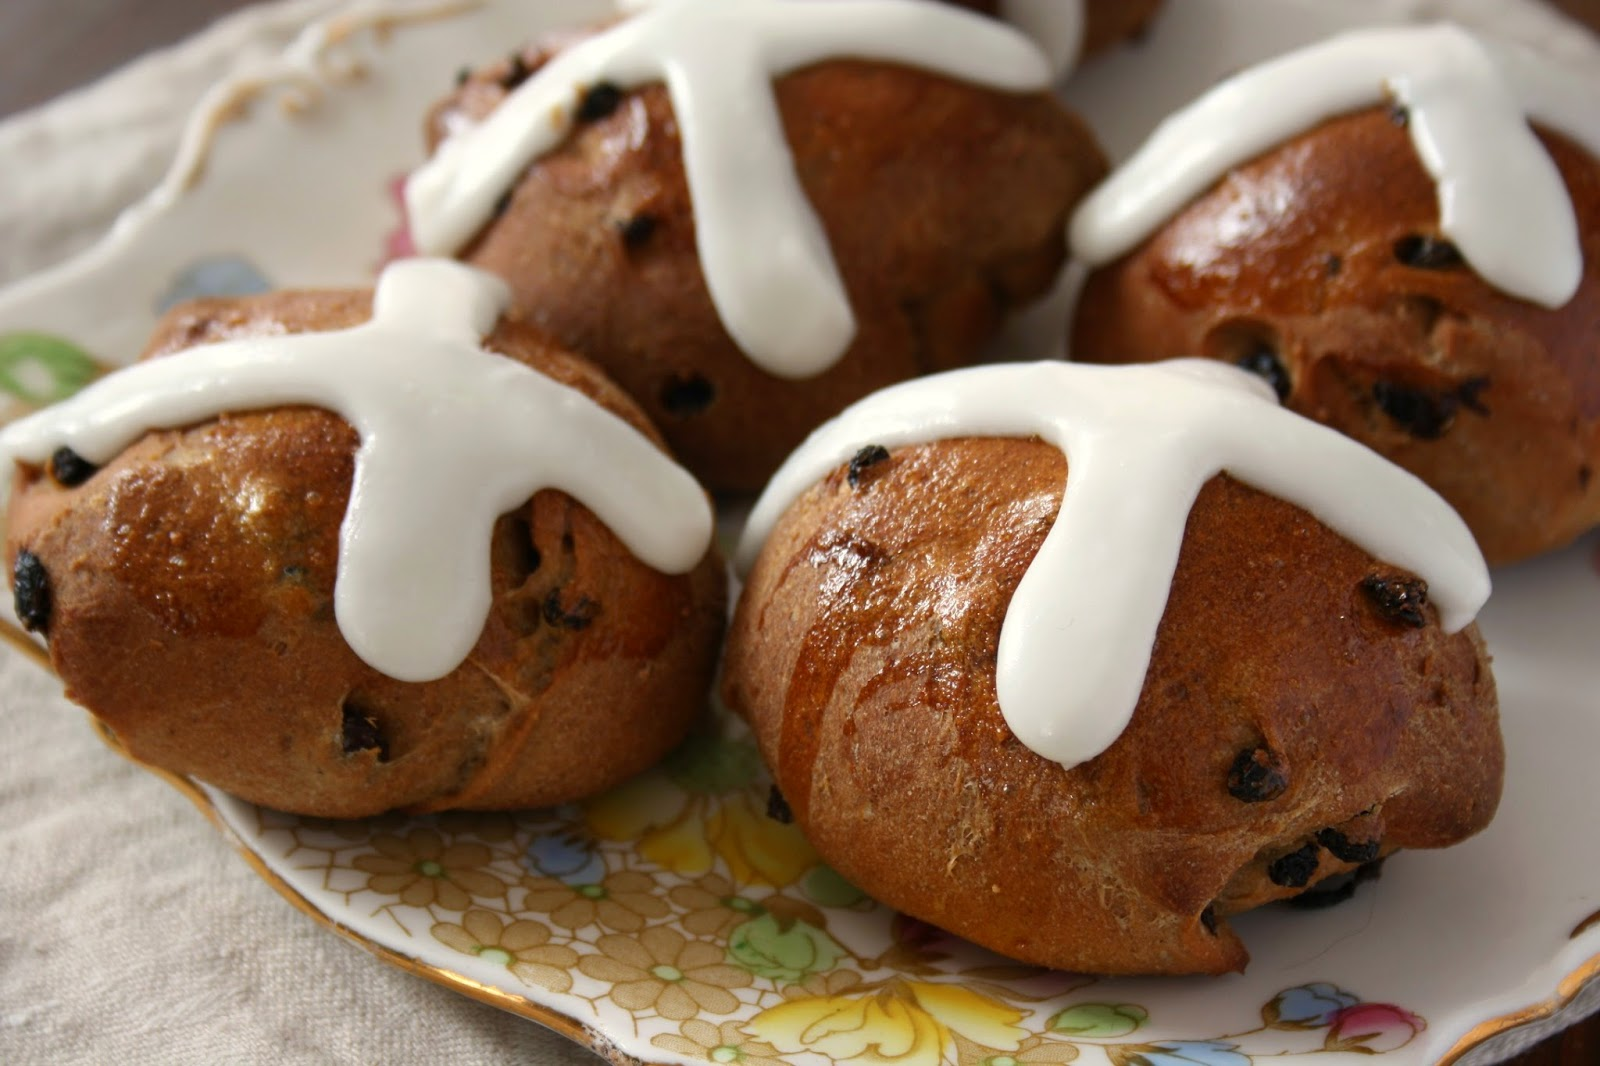 Hot Cross buns - a lightly spiced Easter bread that's easy to make